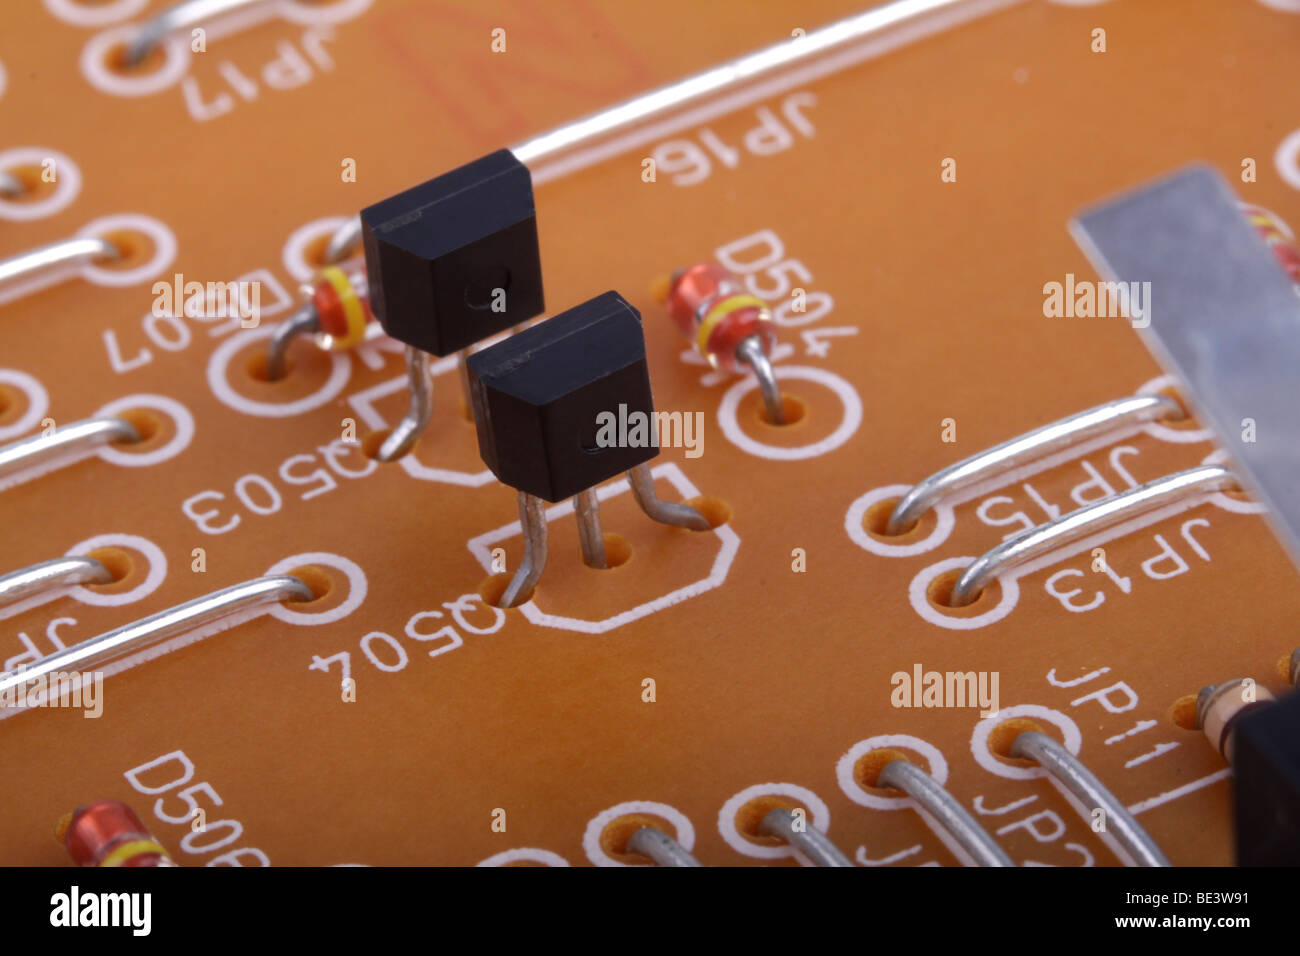 hight resolution of electronic components on a wiring board shown in a very close up macro stock